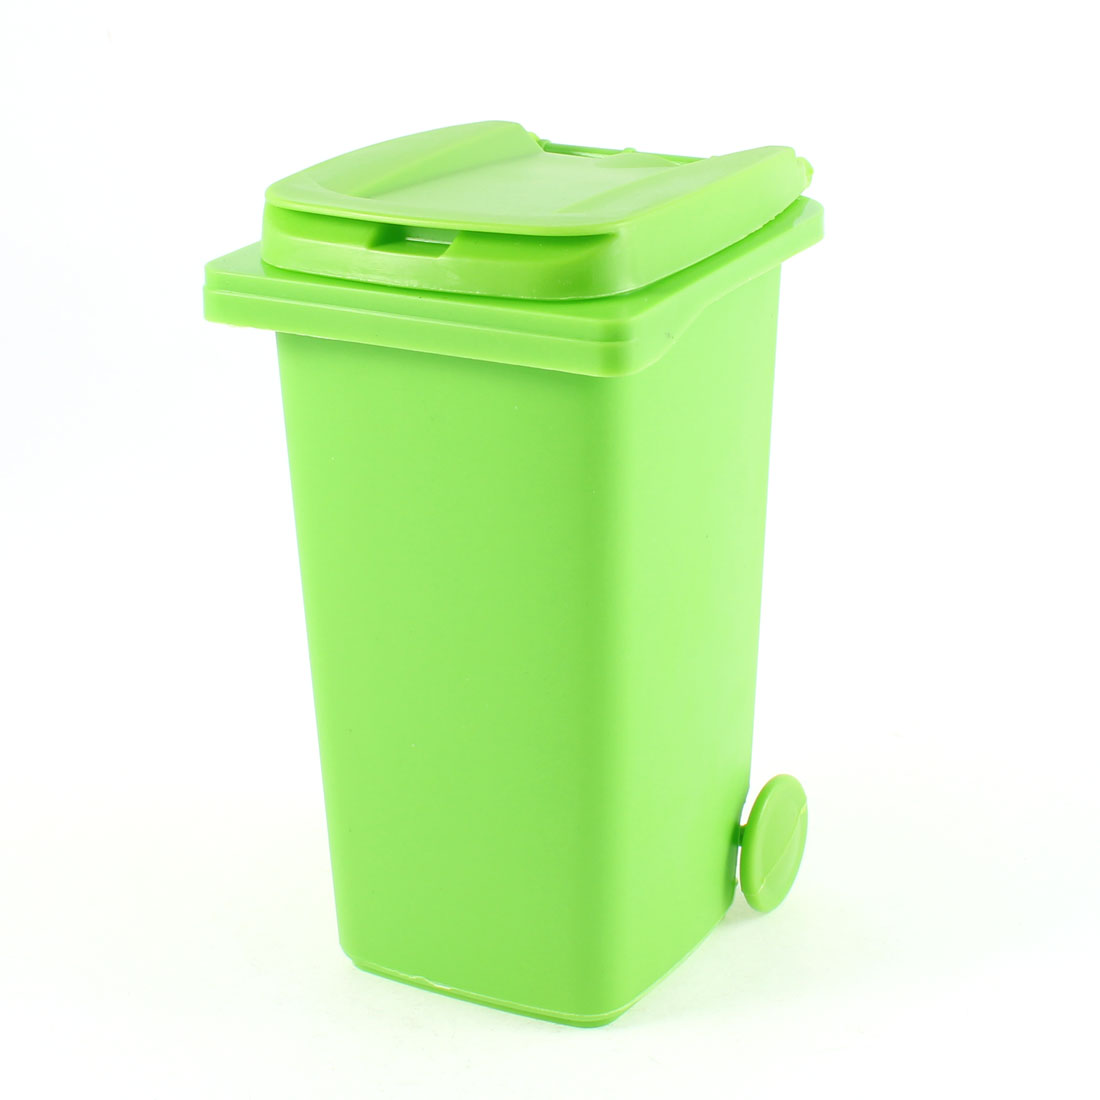 Green Plastic Trash Can Style Ornament Pen Pencil Brush Holder Container